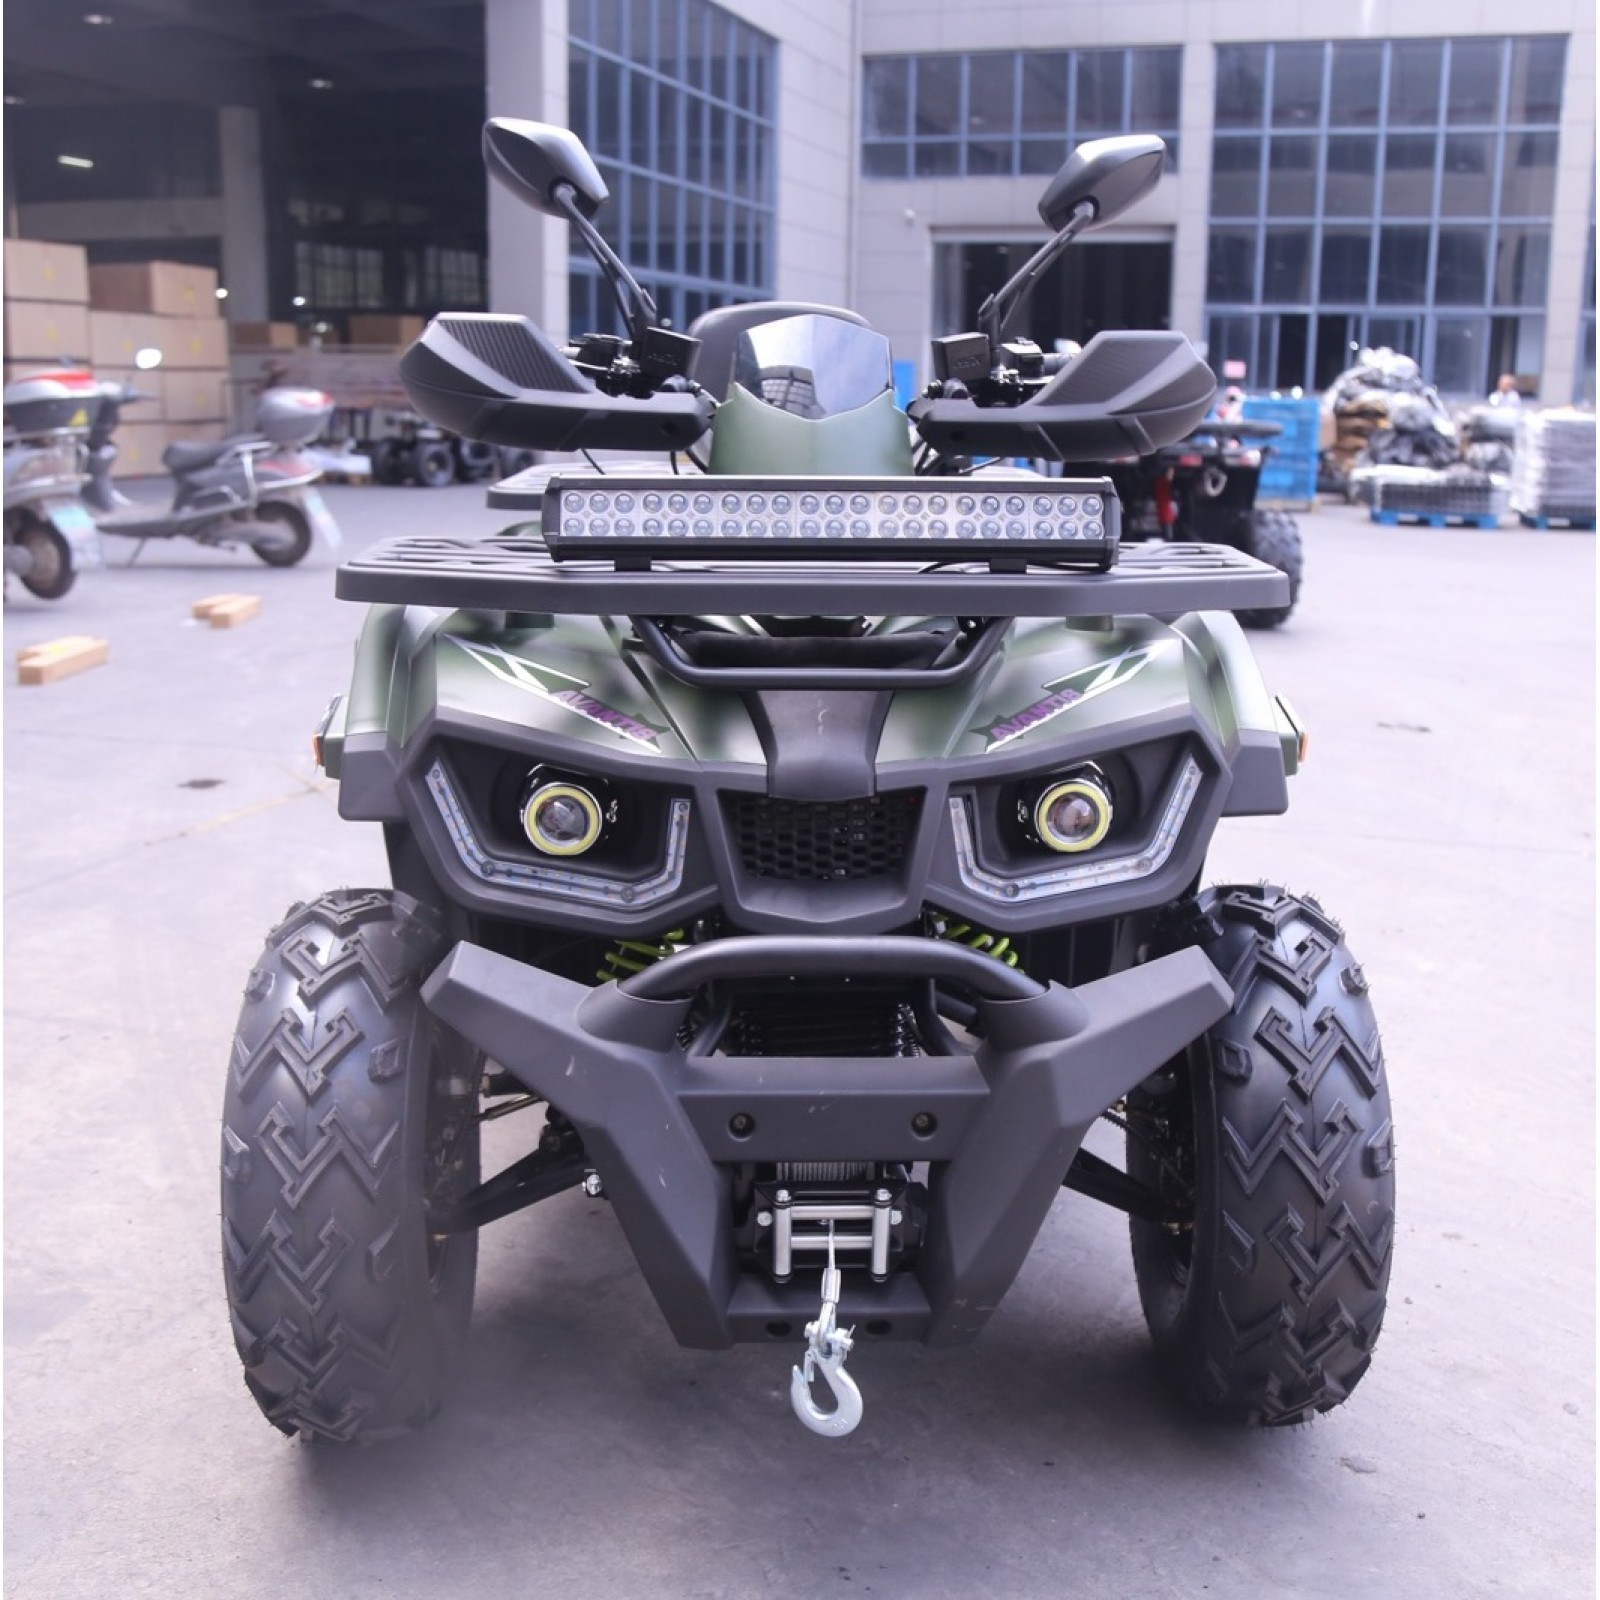 Квадроцикл Avantis Hunter 200 BIG PREMIUM 2021 года